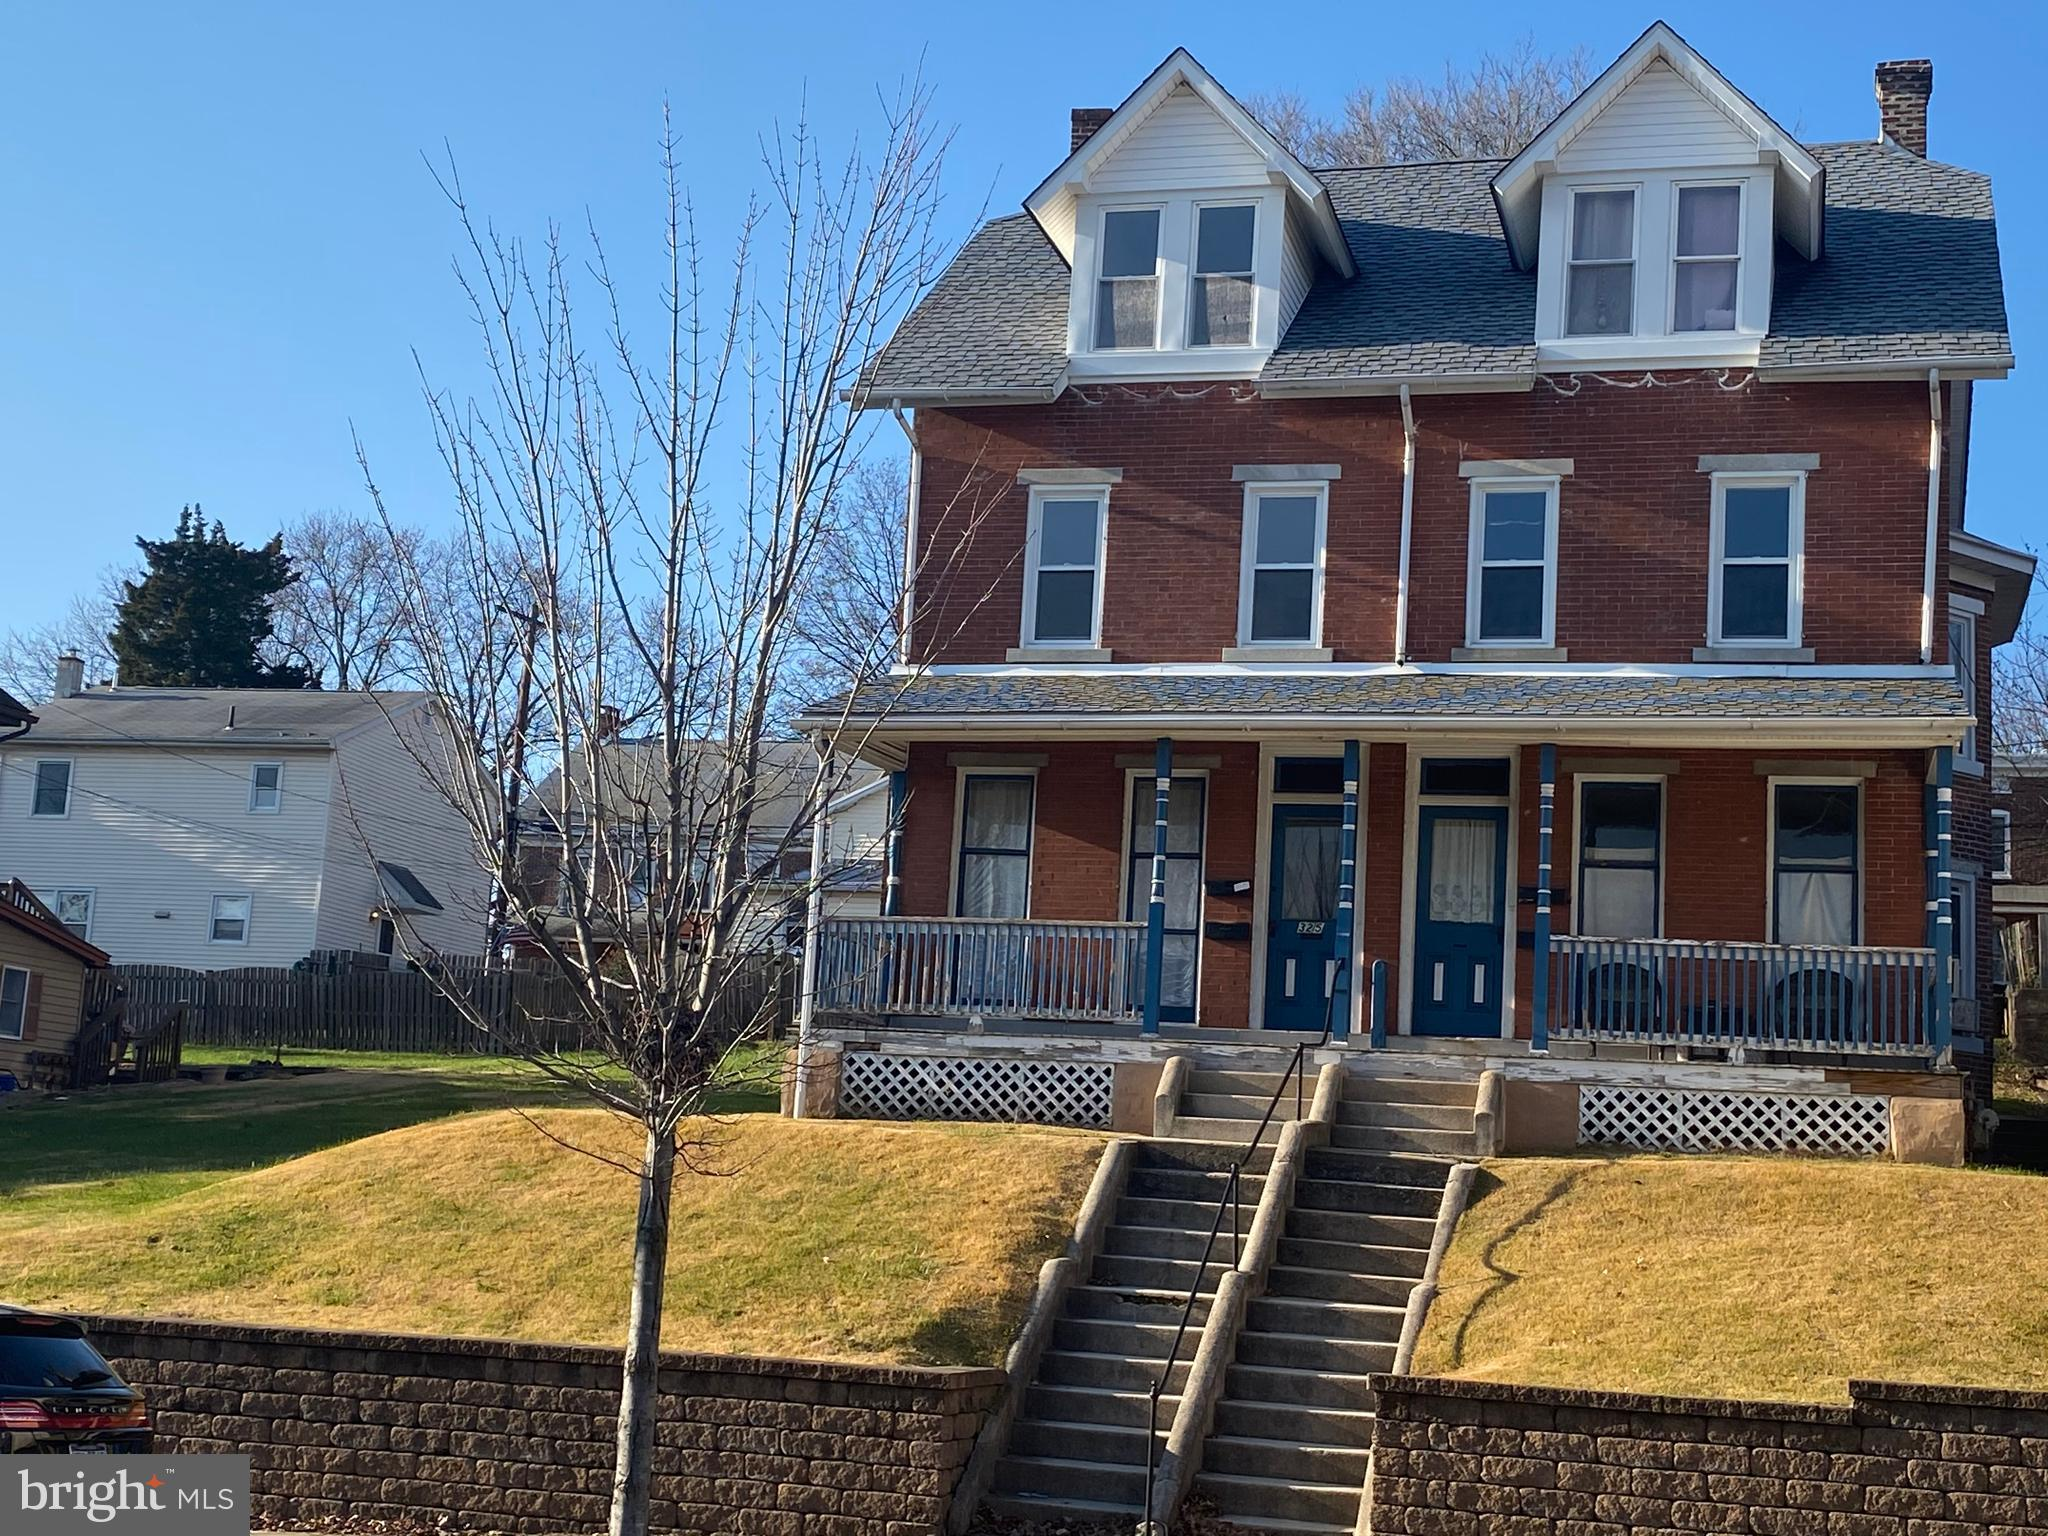 This well-maintained solid brick two-unit twin in the heart of Royersford's business district is a wonderful opportunity for an investor or owner/occupant! Currently consisting of two units (first floor one bedroom, and upper floor three bedroom), the property could be easily converted back to a 4Bd/2Ba single family home. This property may be sold individually or packaged together with 325 Main Street which has a mirror-image floor plan plus a large level side yard included that has the potential to build additional units, possible retail space, or to be subdivided and sold. The first floor one bedroom unit is currently occupied, and boasts great natural light, a spacious eat-in kitchen, and original woodwork & trim. The third floor unit is vacant! With so many possibilities and so much potential all in a fabulous location, don't miss this opportunity! Both units are currently rented.